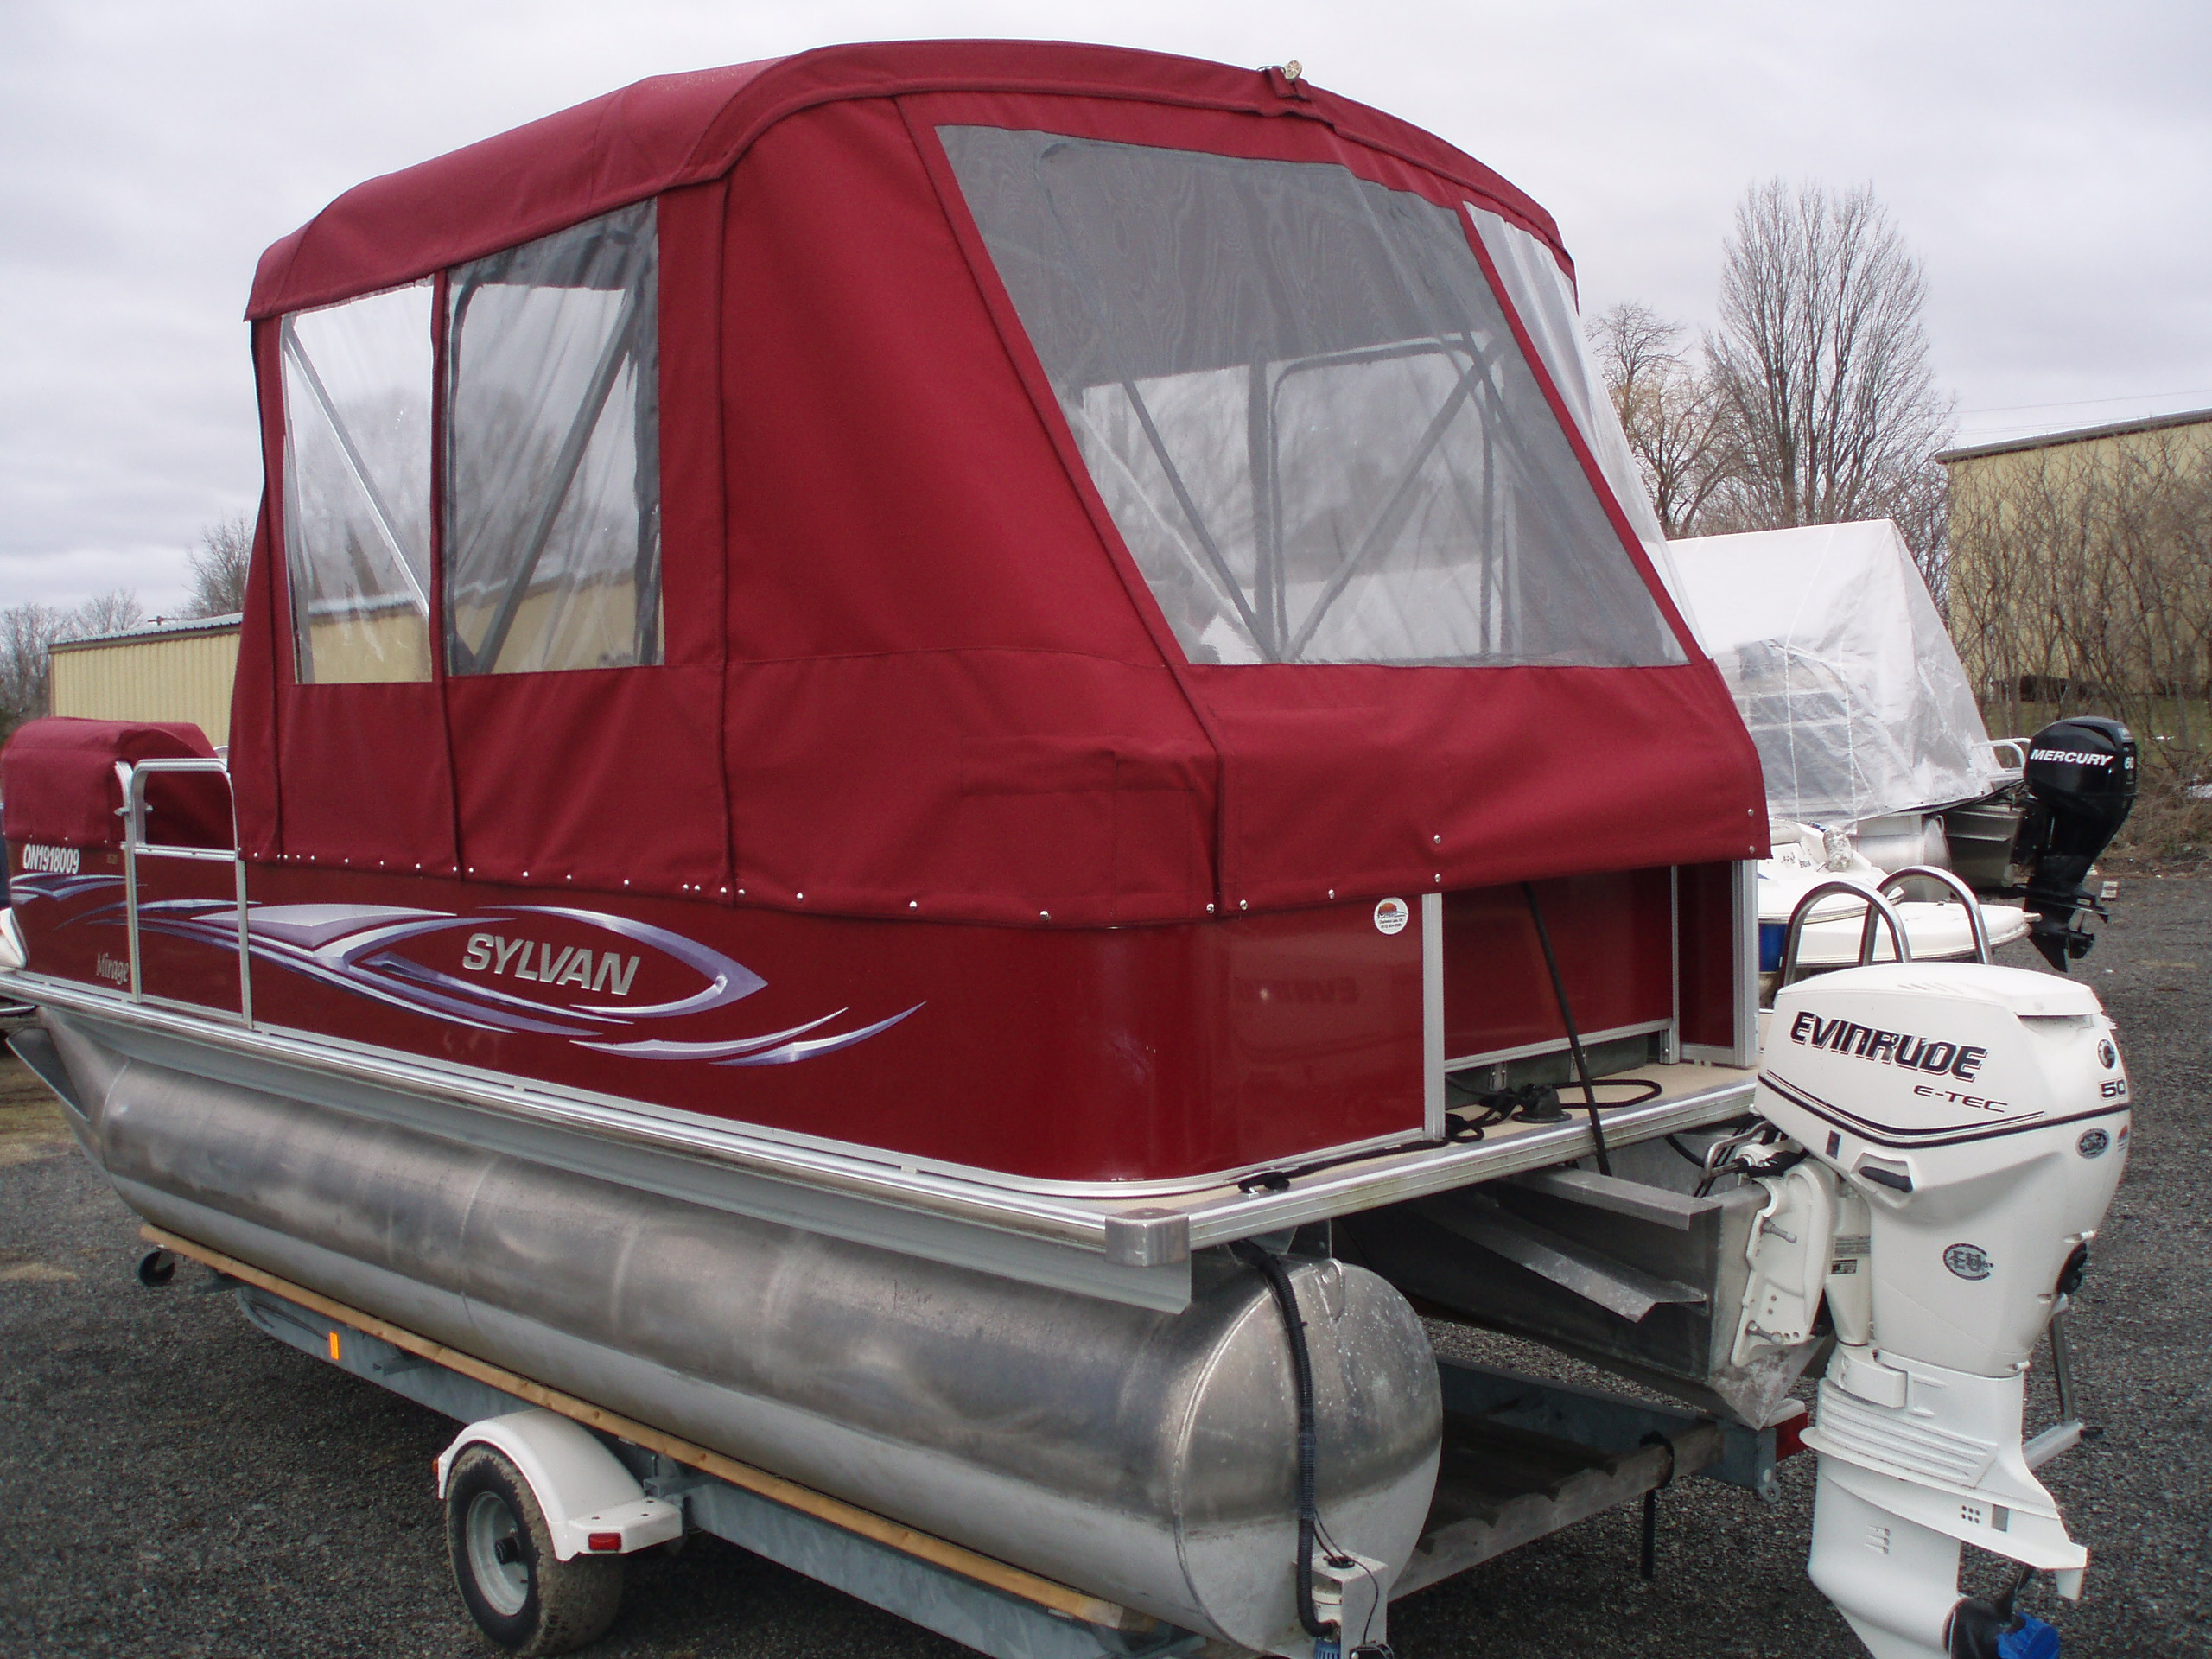 Pontoon boat cover - rear view